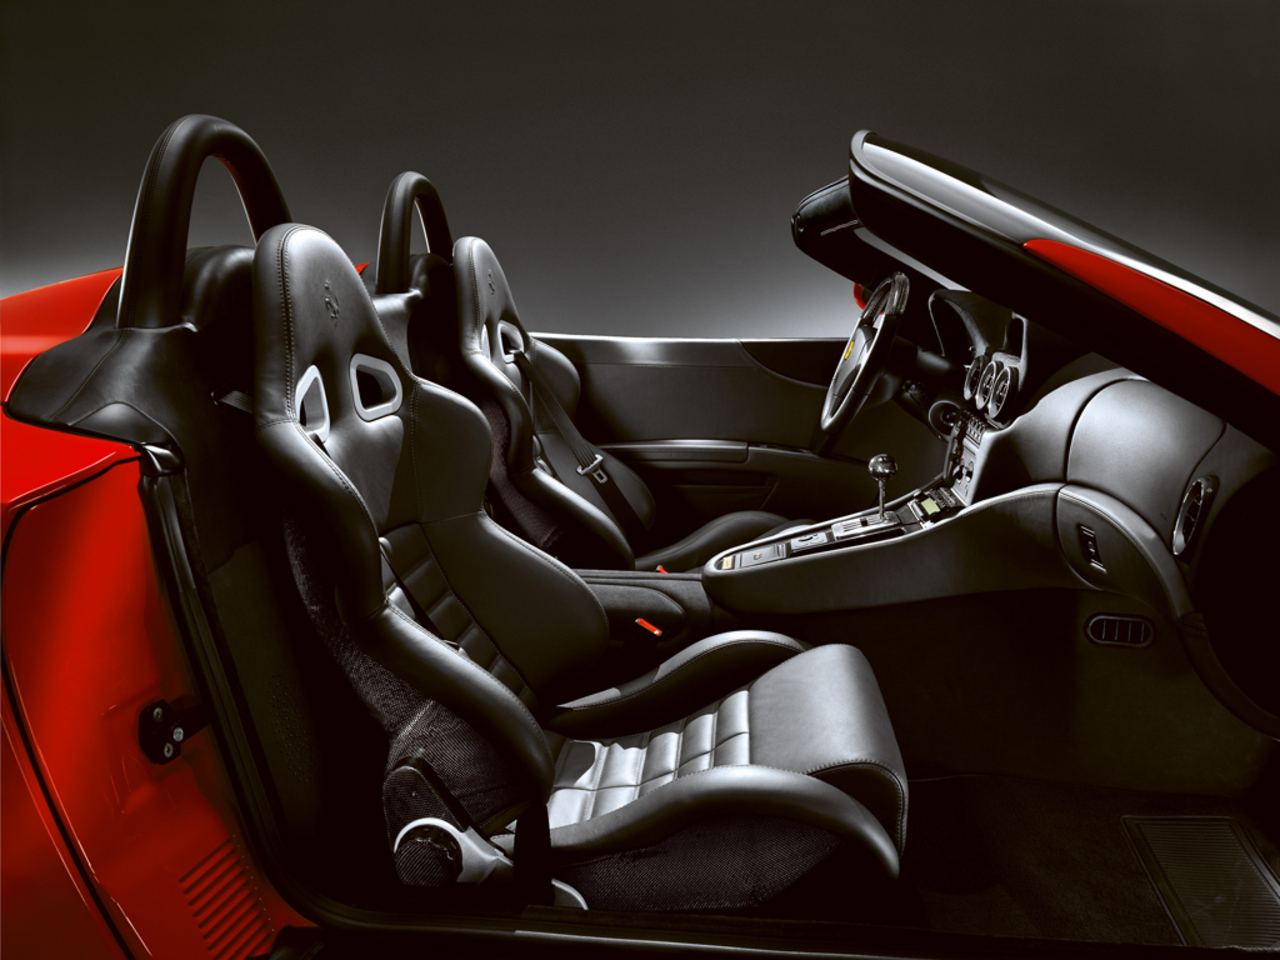 550 Barchetta Pininfarina: Interior and seats detail